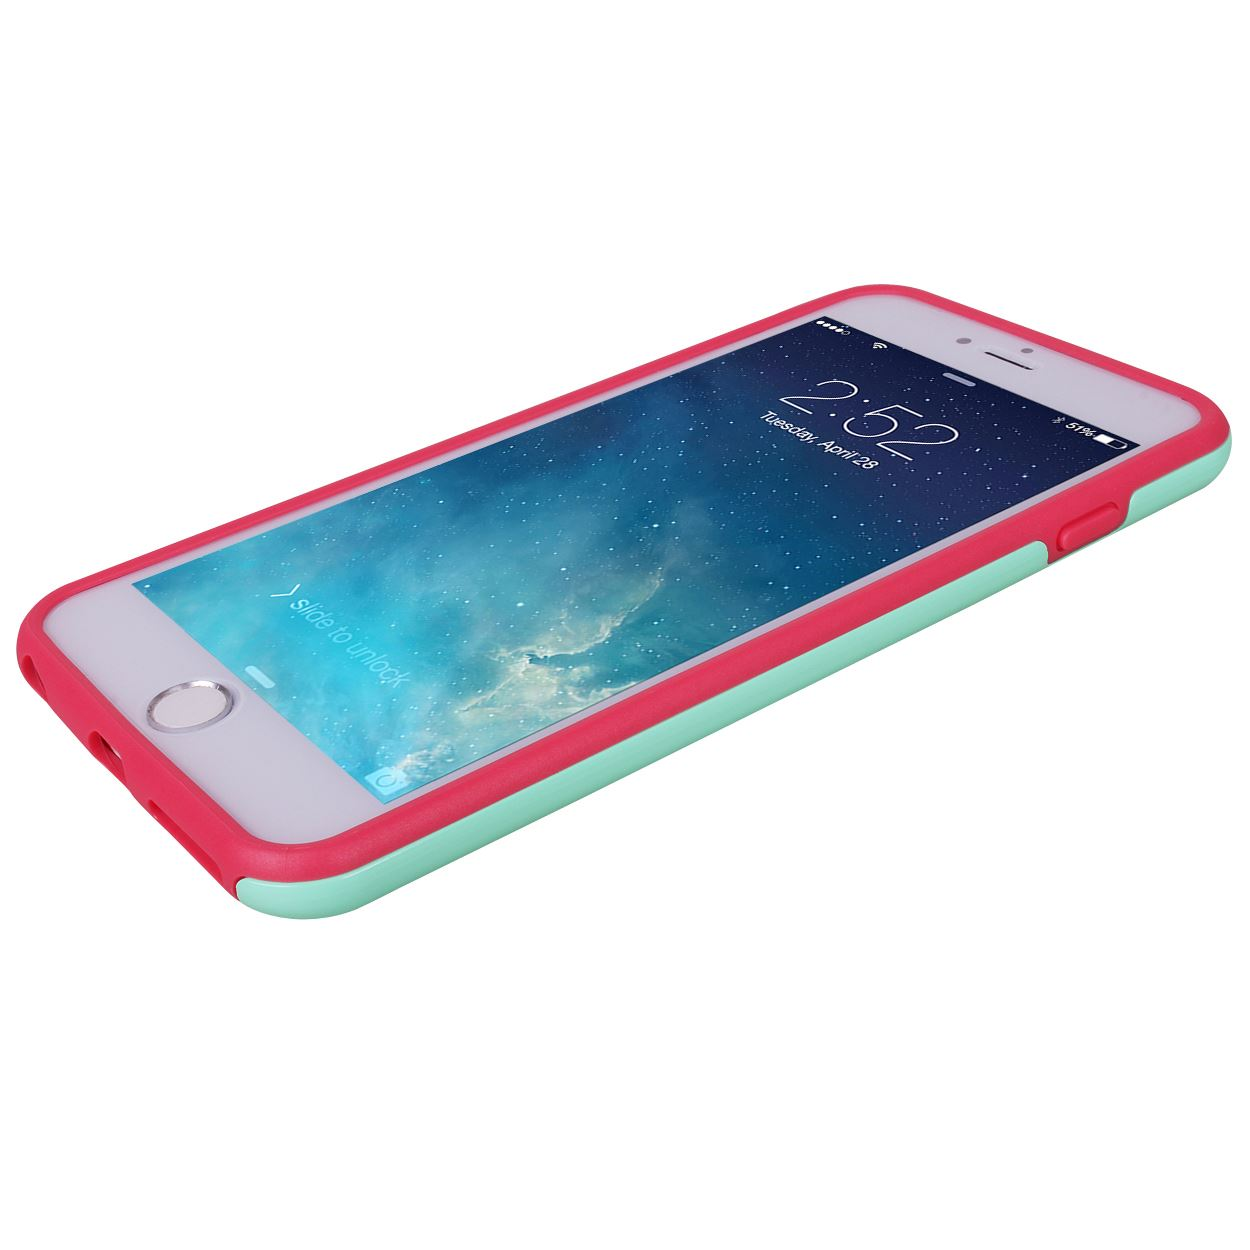 Slim 2 Parts Hybrid Hard Mint +Soft Pink Rubber TPU Bumper Protective Case Cover